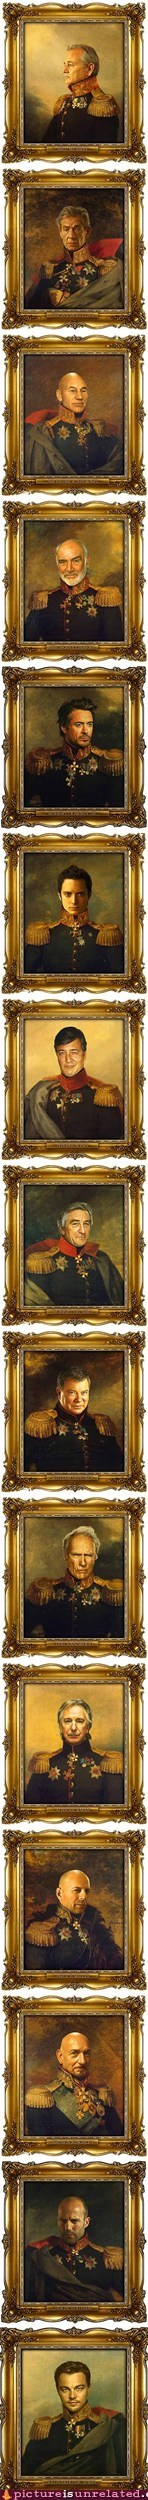 Famous Actors As 19th-Century Russian Generals